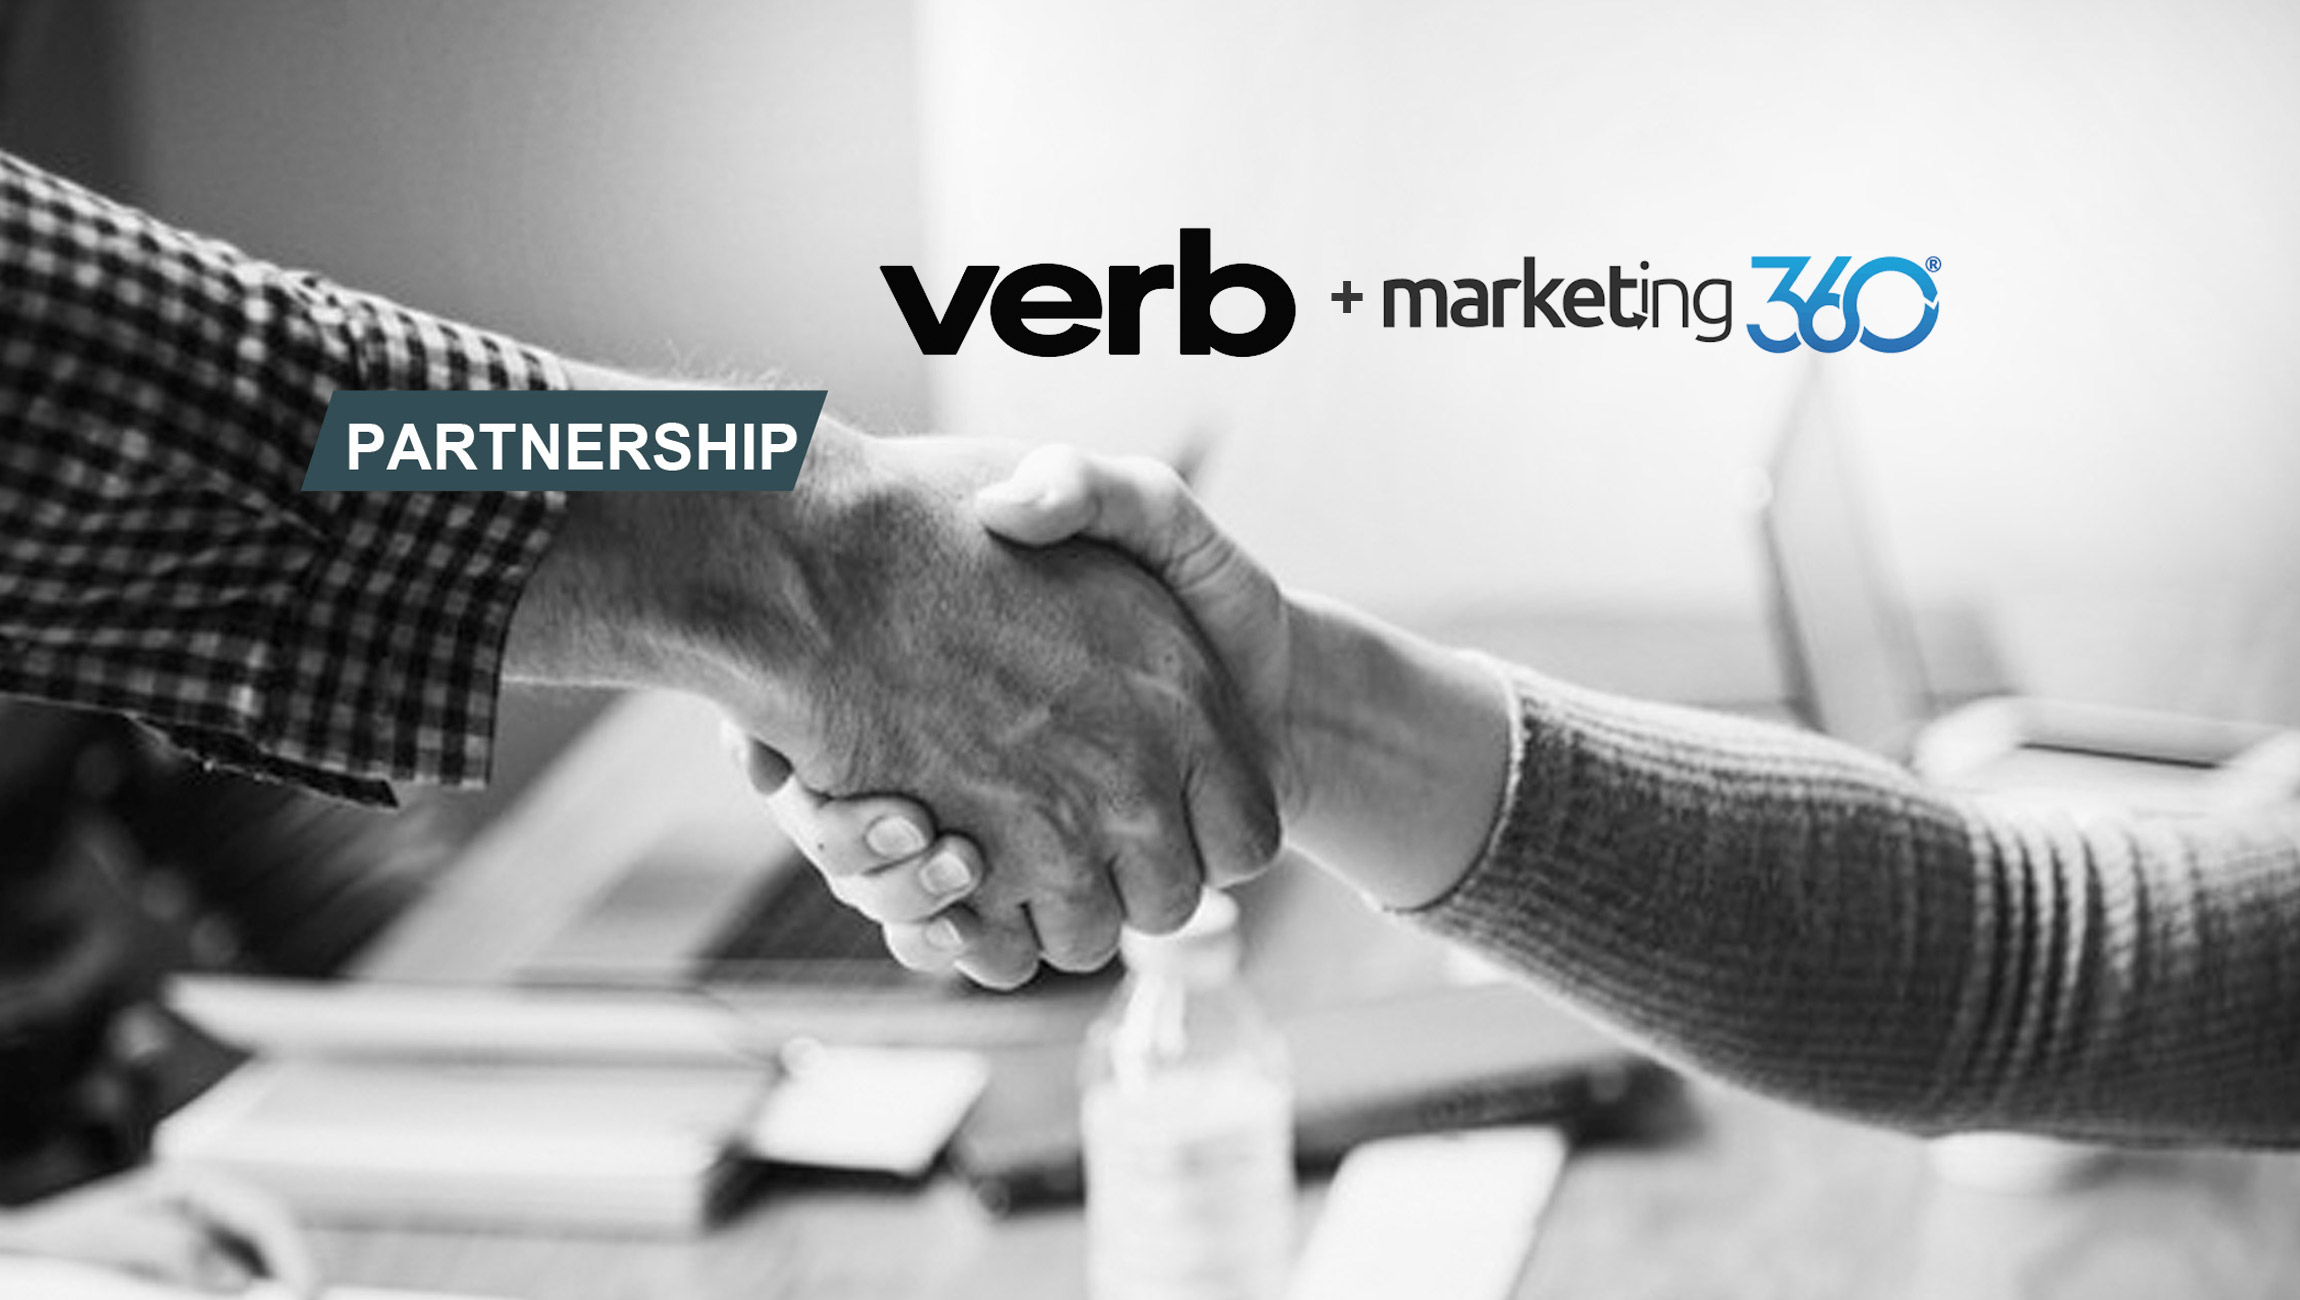 VERB Partners with Marketing 360®, a Leading Marketing Technology Provider, to Accelerate Adoption of its Interactive Content Management and Livestream Selling Tools